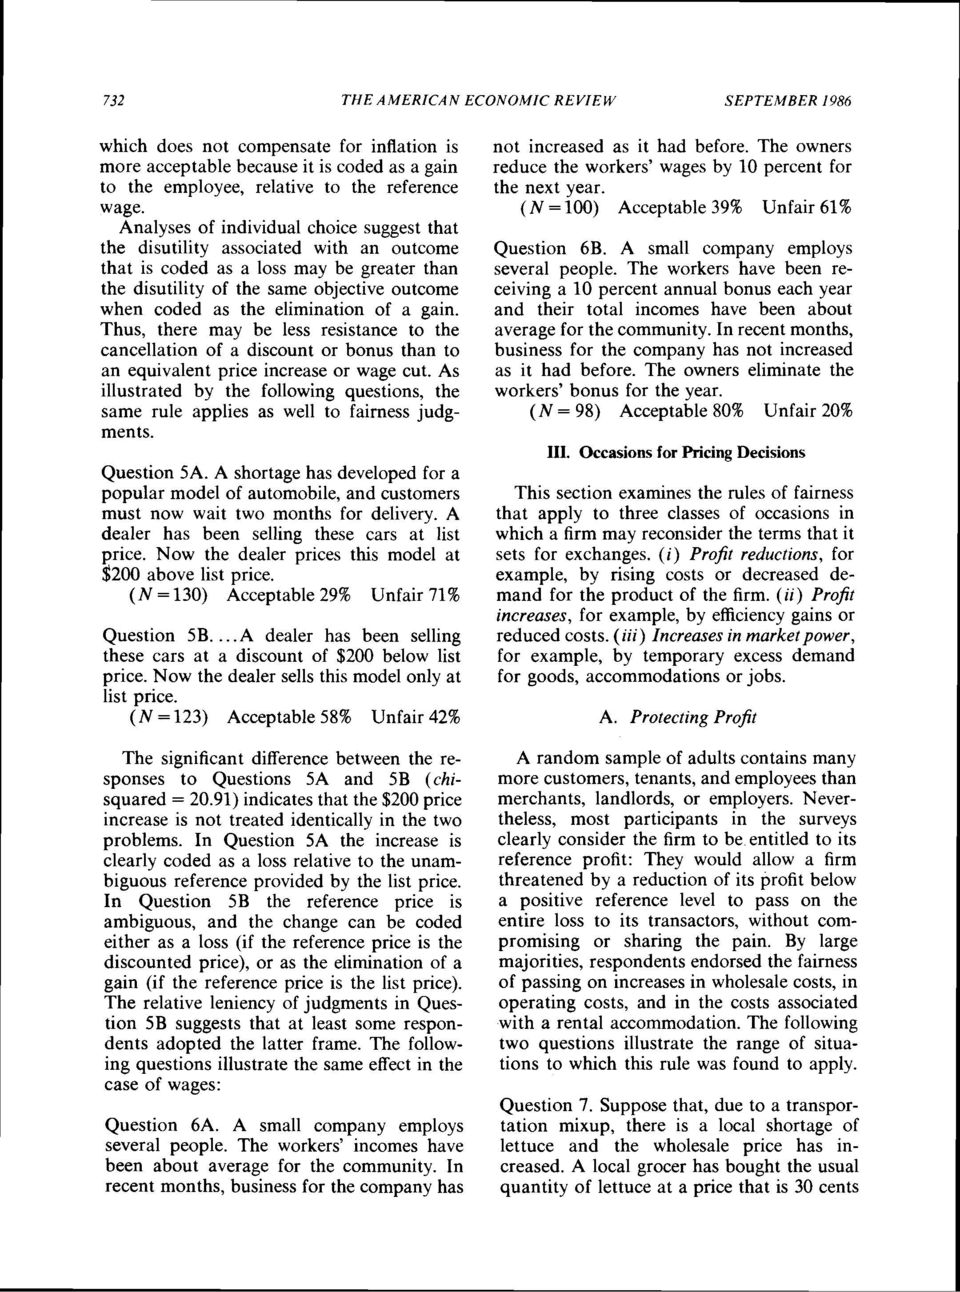 elimination of a gain. Thus, there may be less resistance to the cancellation of a discount or bonus than to an equivalent price increase or wage cut.